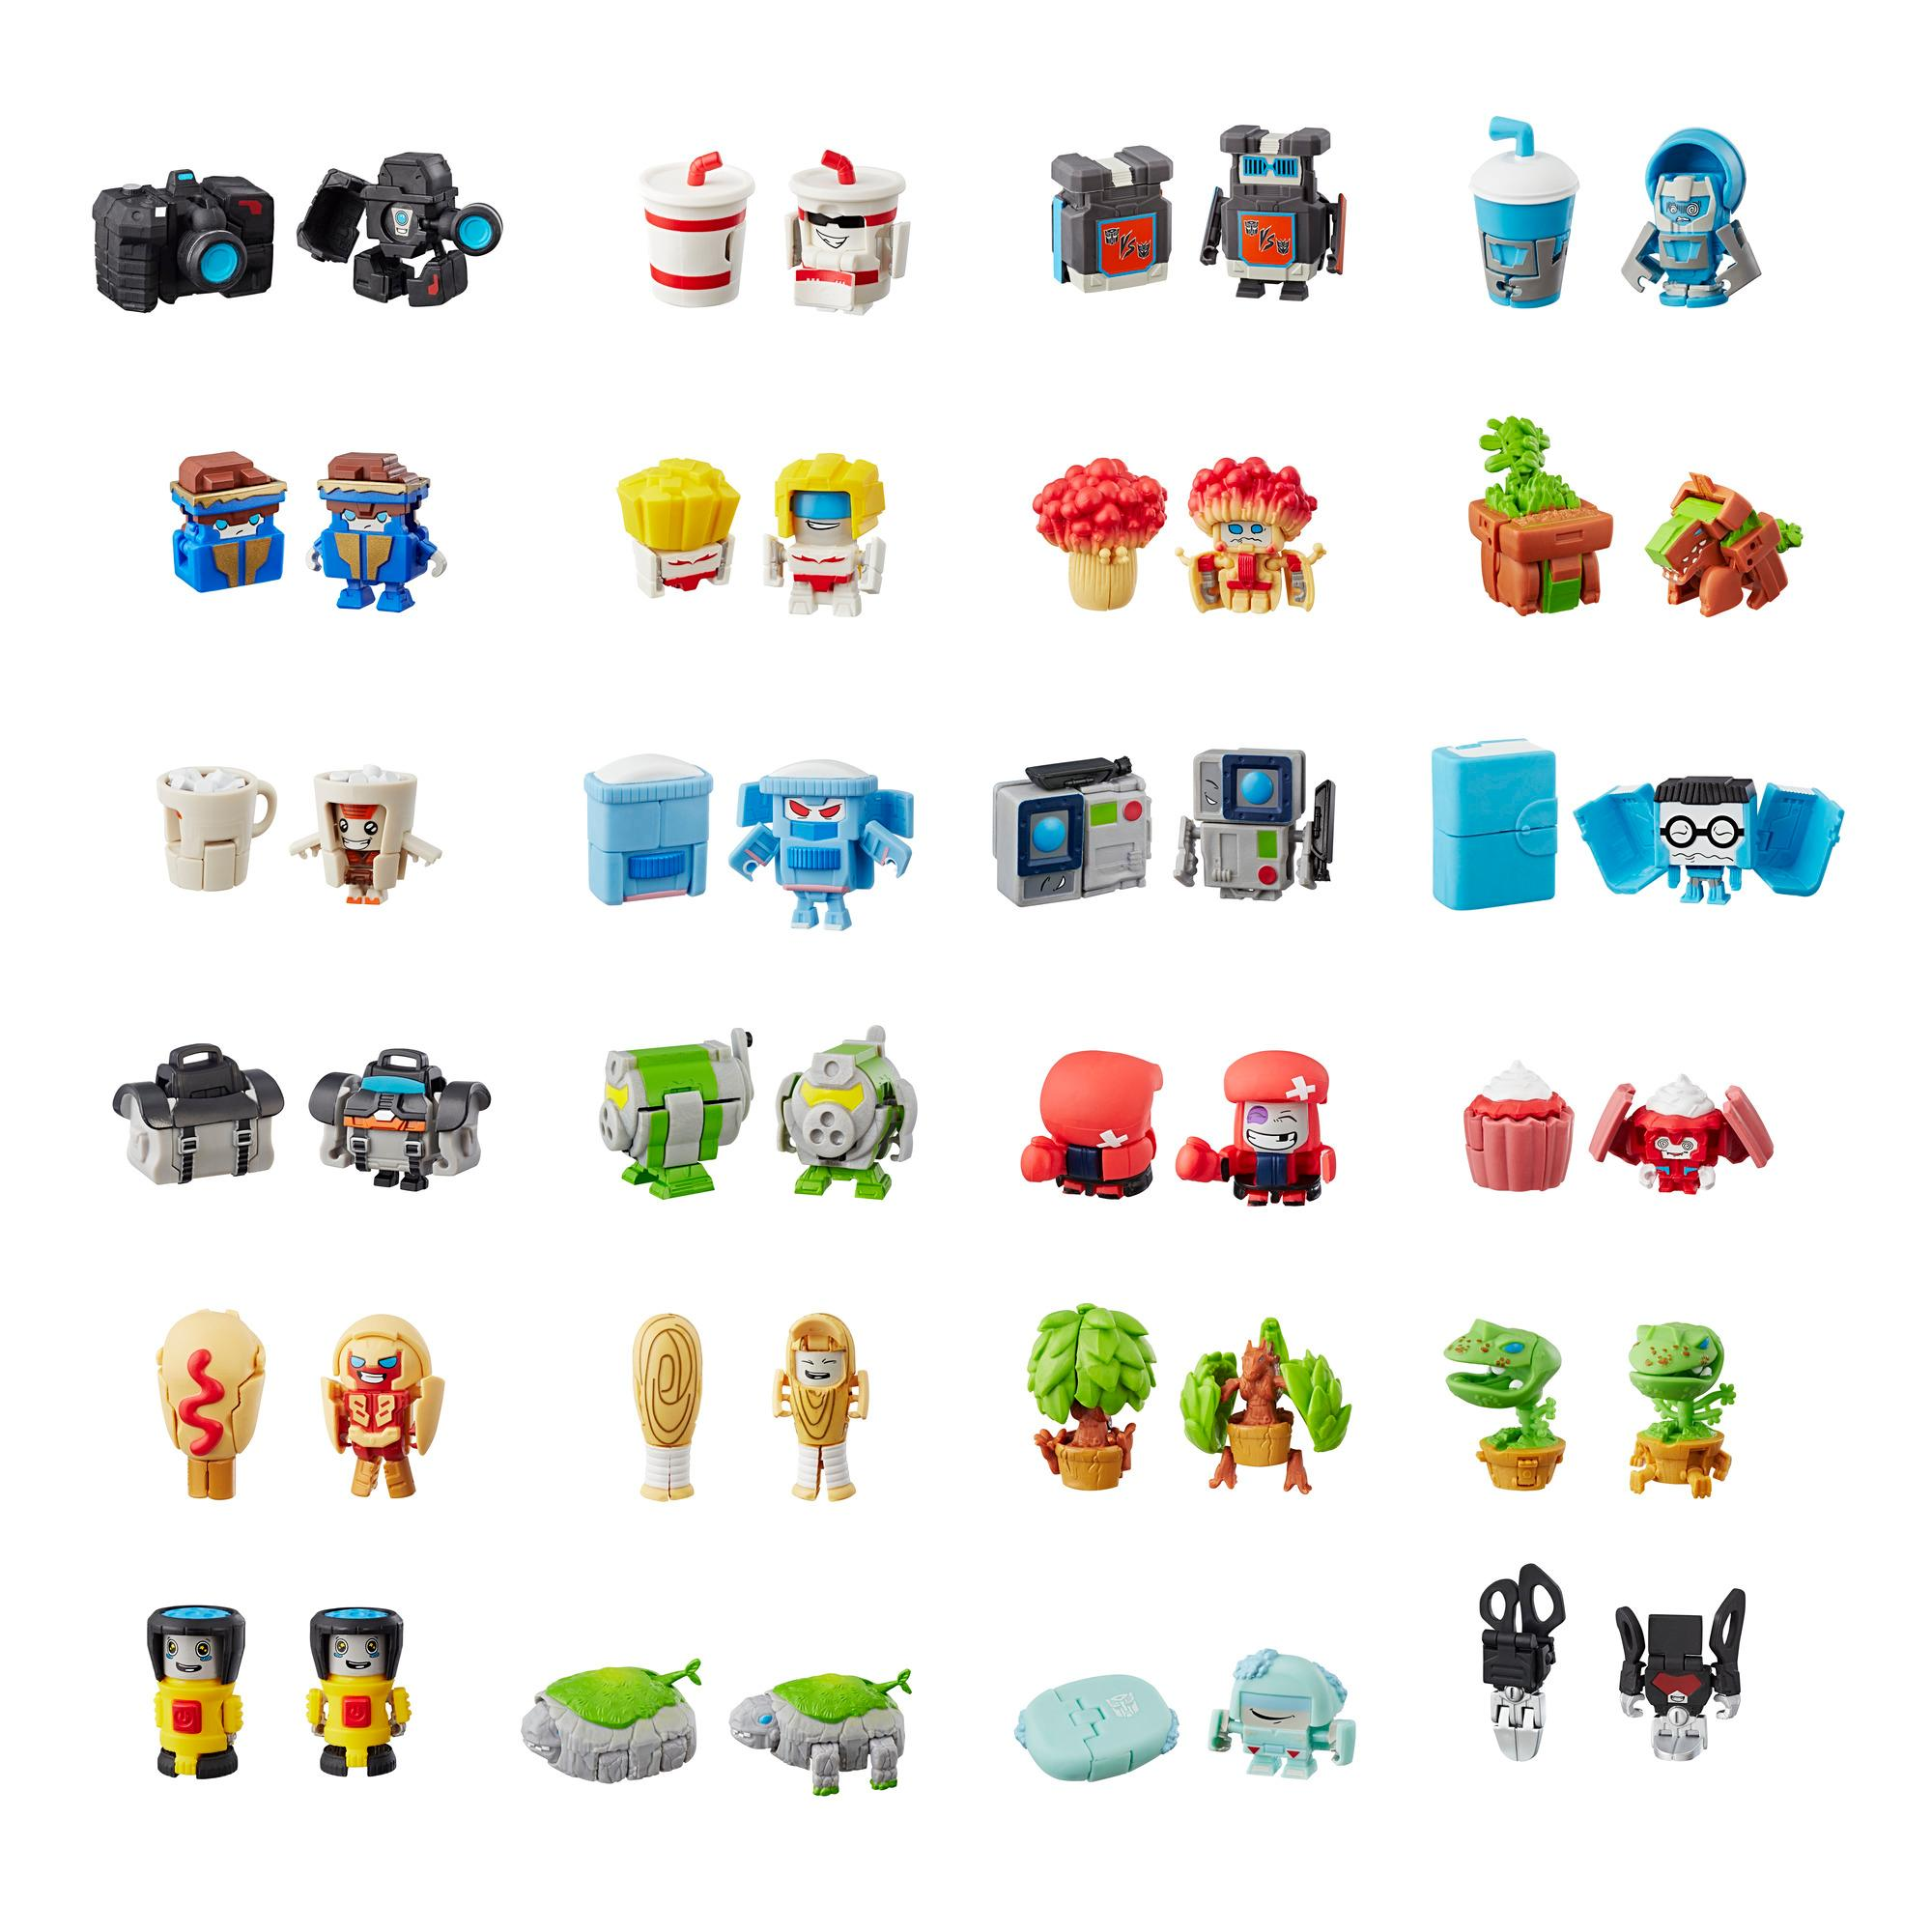 Transformers BotBots Serie 1 Figura misterio coleccionable de empaque sorpresa --  ¡Juguete sorpresa 2 en 1!